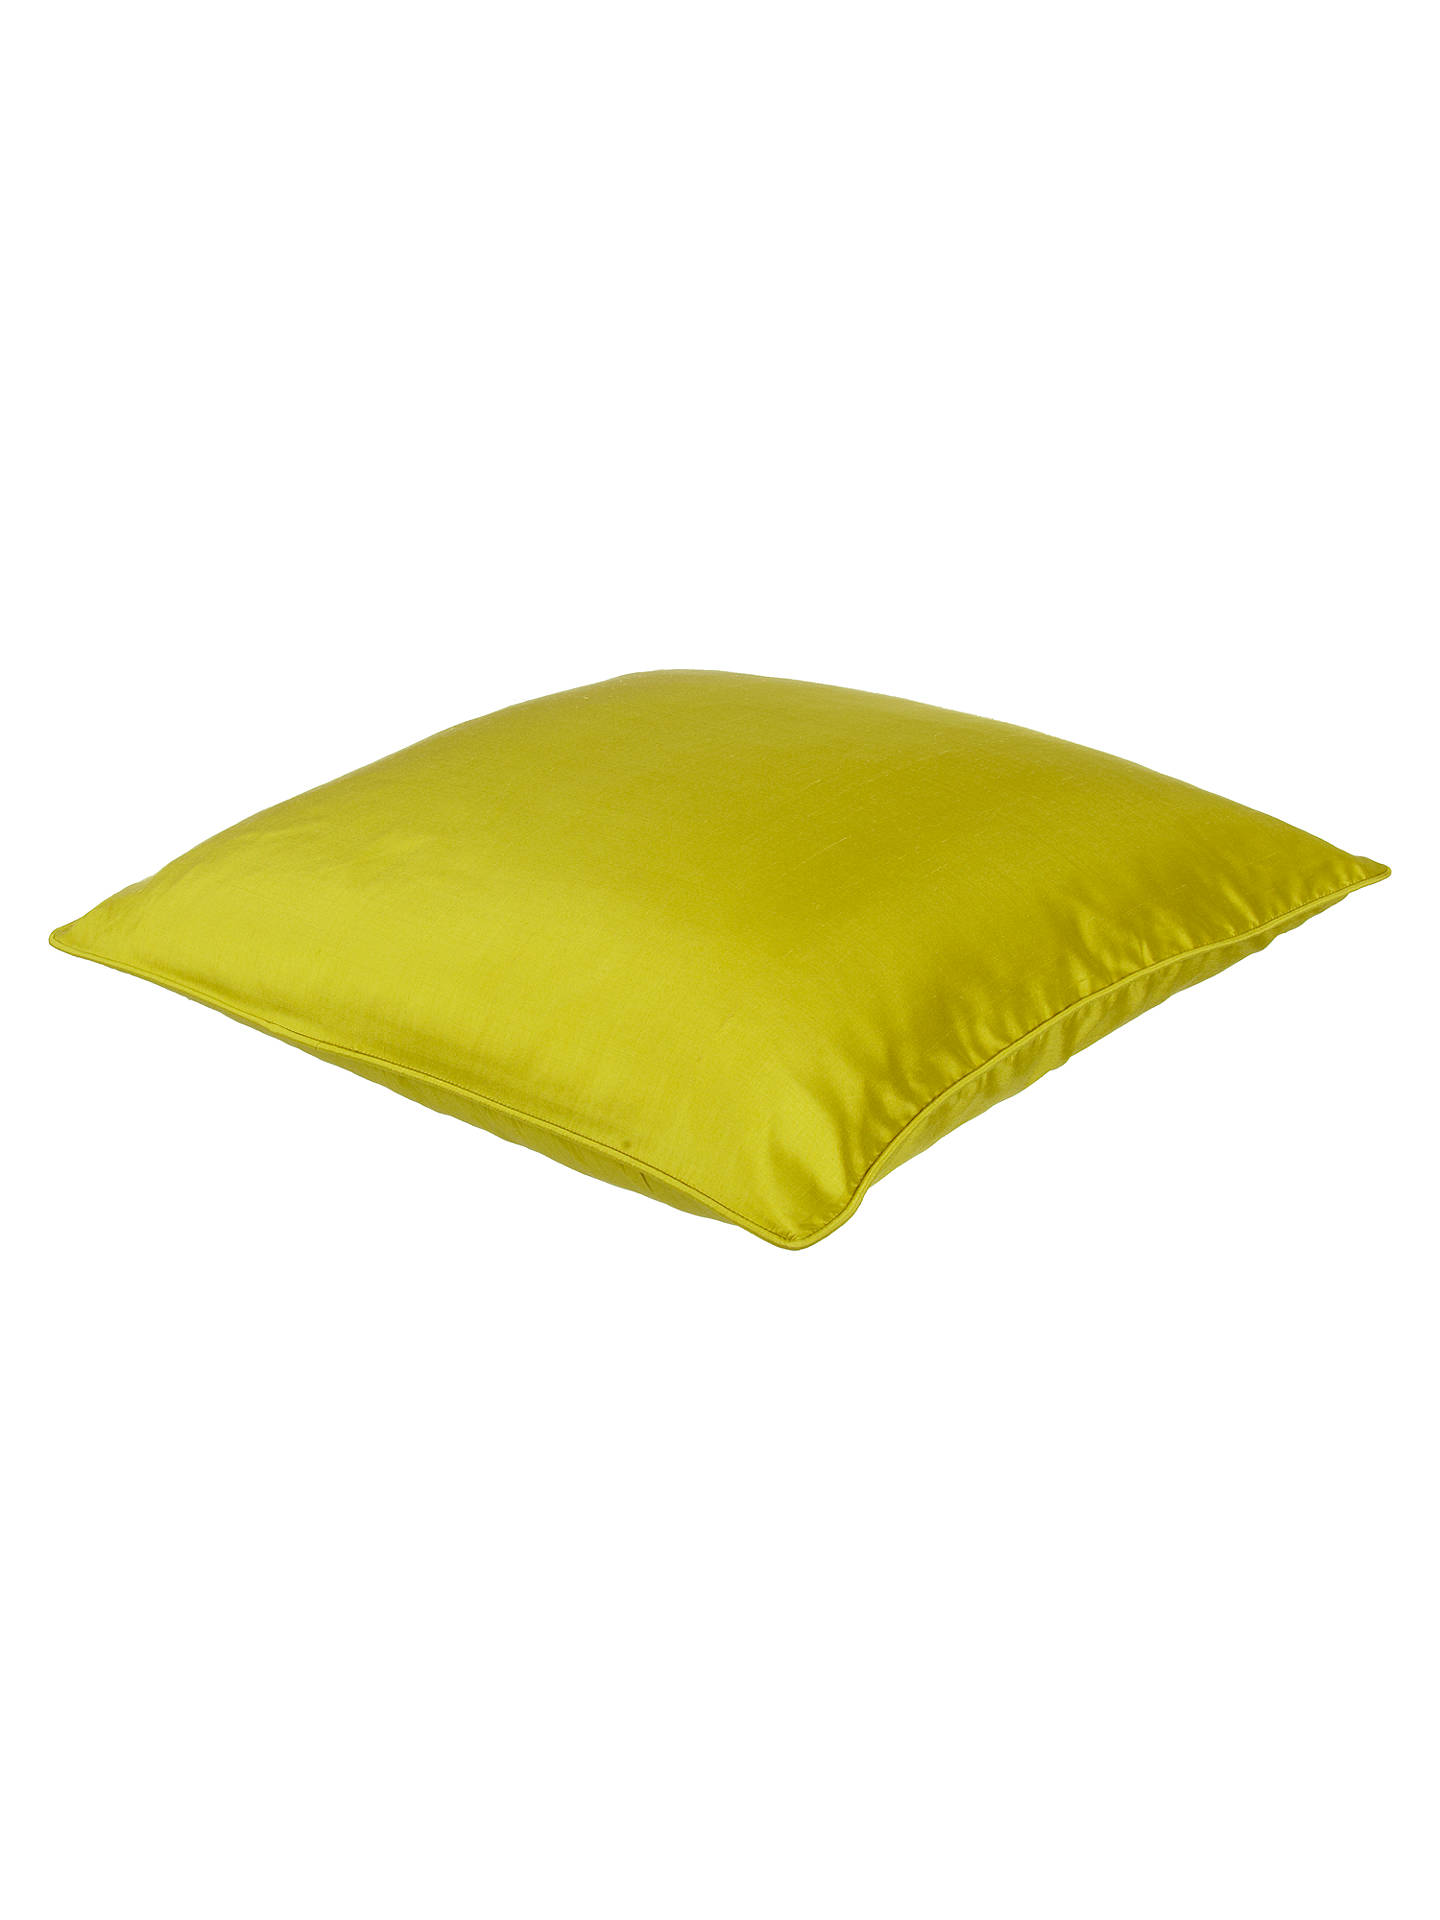 BuyJohn Lewis & Partners Silk Cushion, Chartreuse Online at johnlewis.com